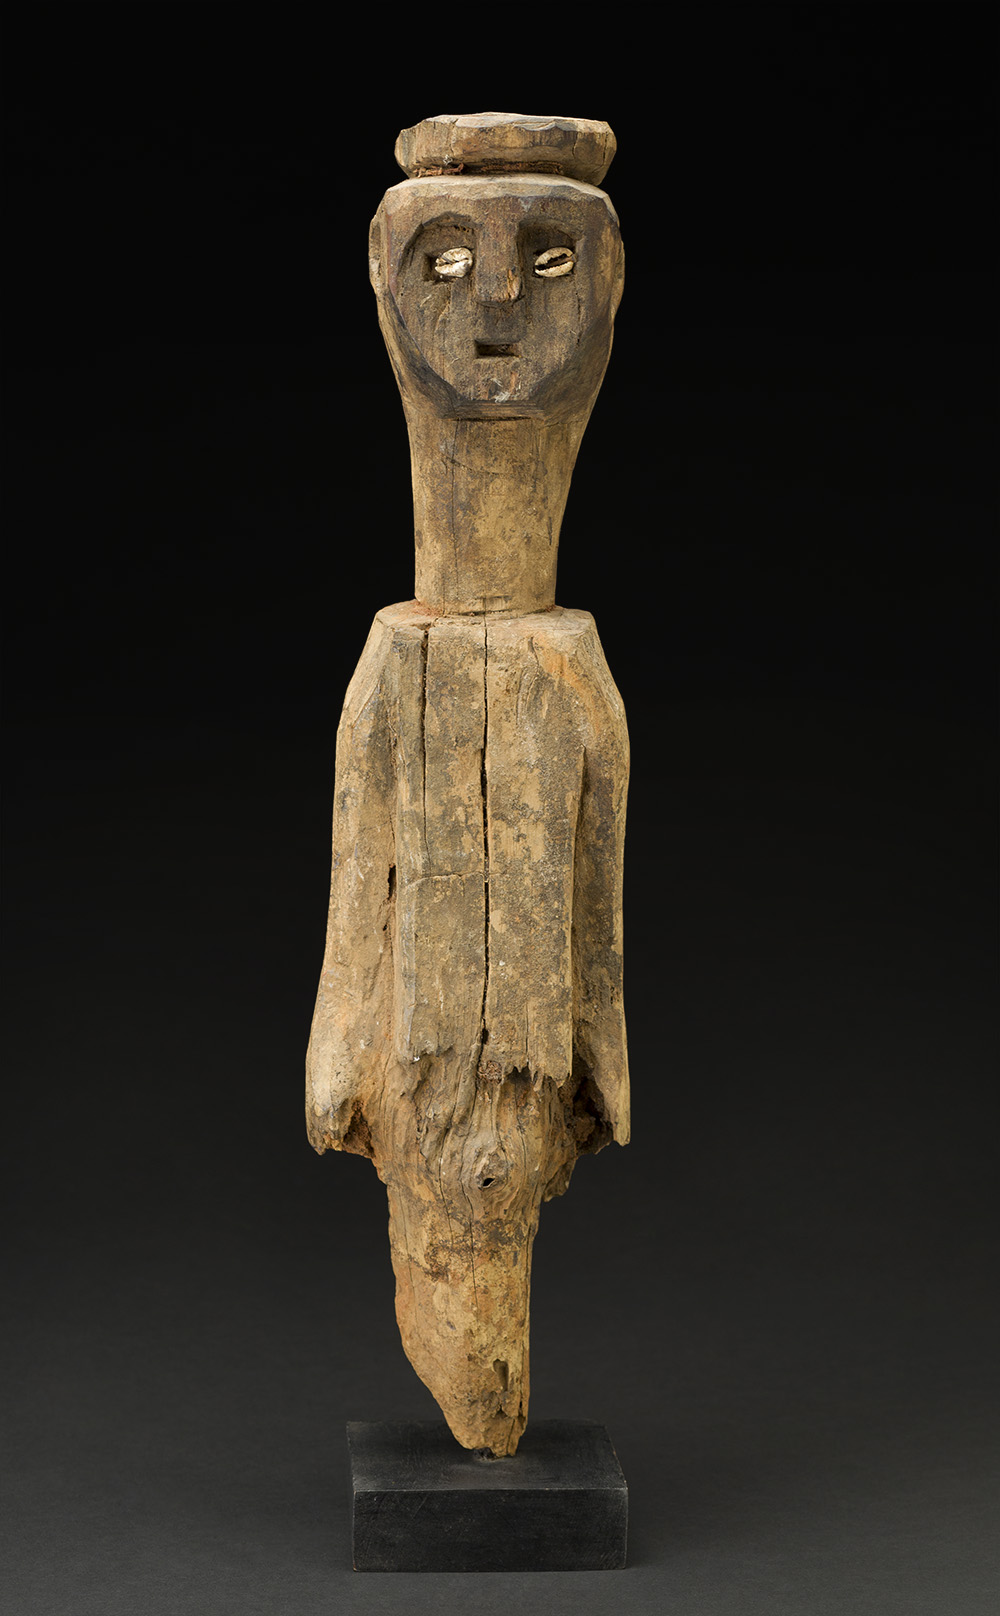 Africa    Bocio - Ewe People - Togo  , Mid. 20th C. Wood, shells, natural materials 19 x 5 x 3 inches 48.3 x 12.7 x 7.6 cm Af 330